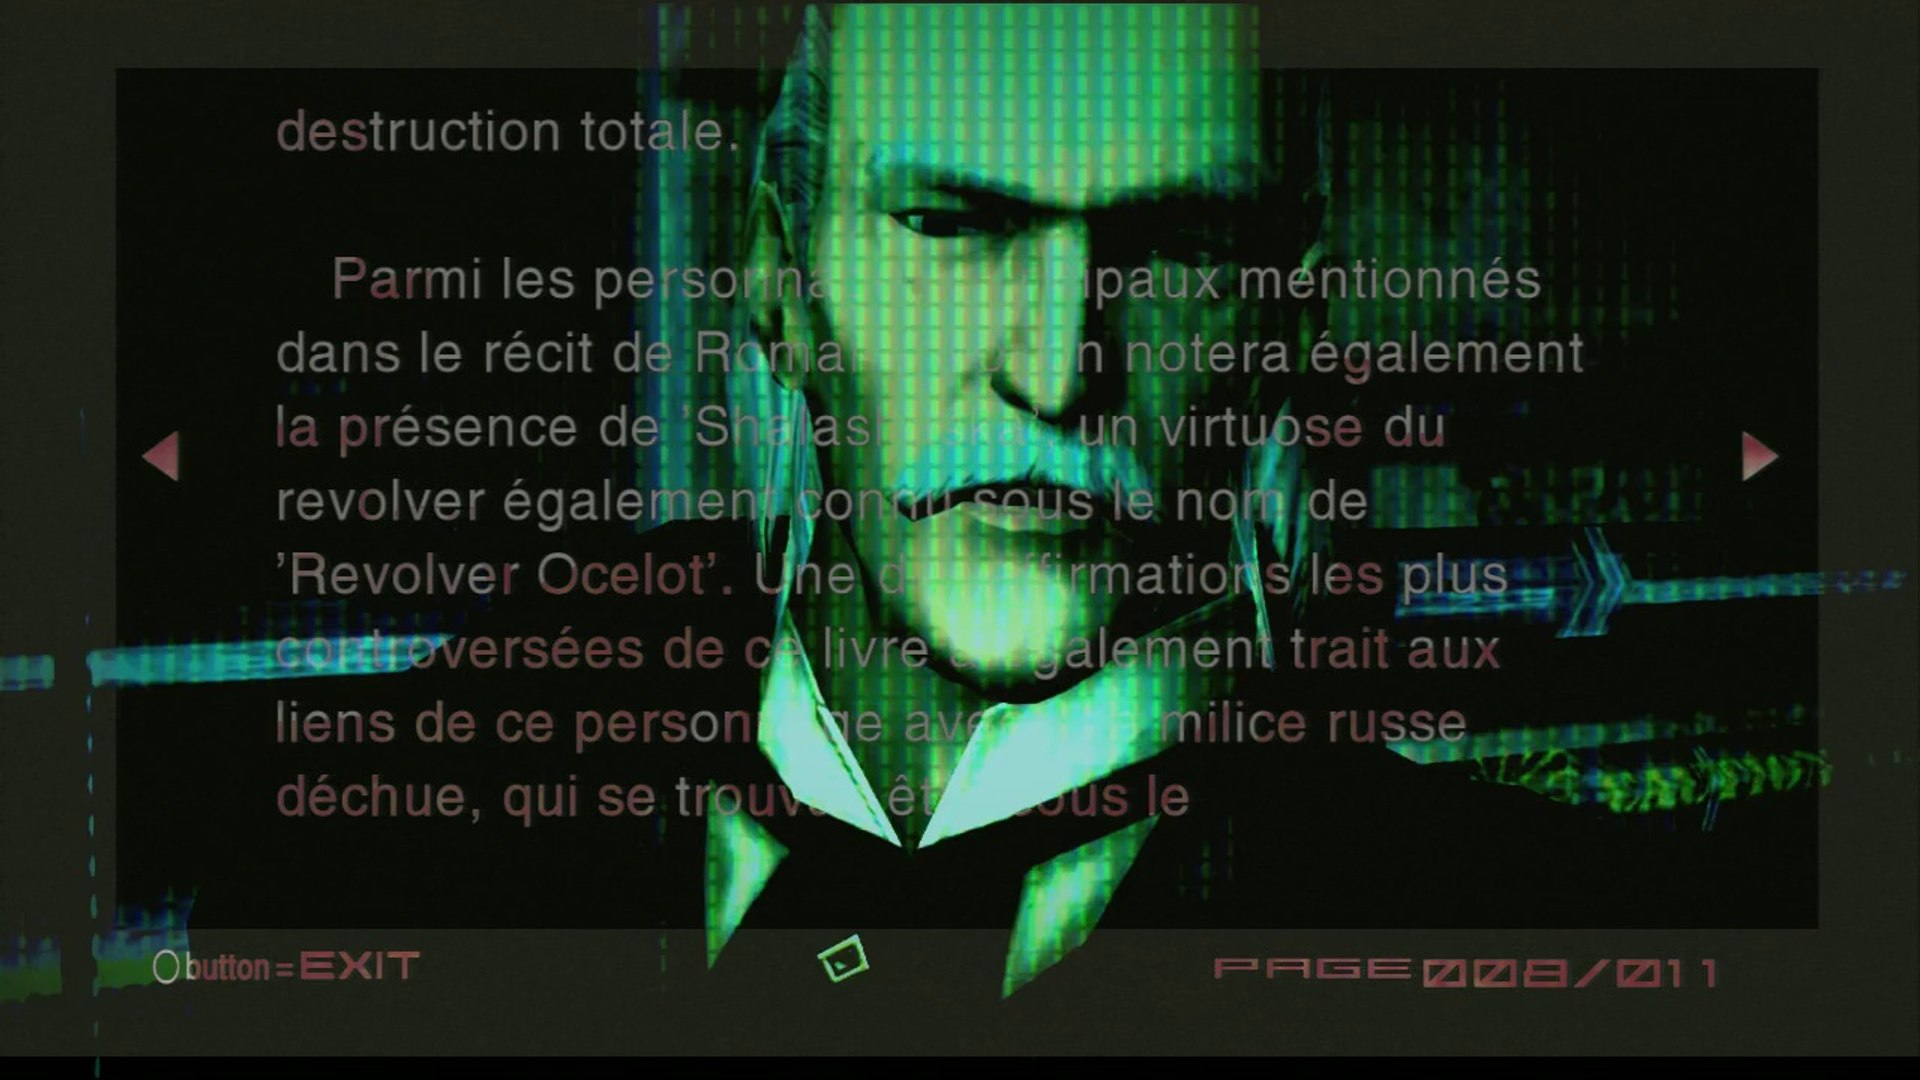 [Préface] Metal Gear Solid 2 : Sons of Liberty - The New York Mirror